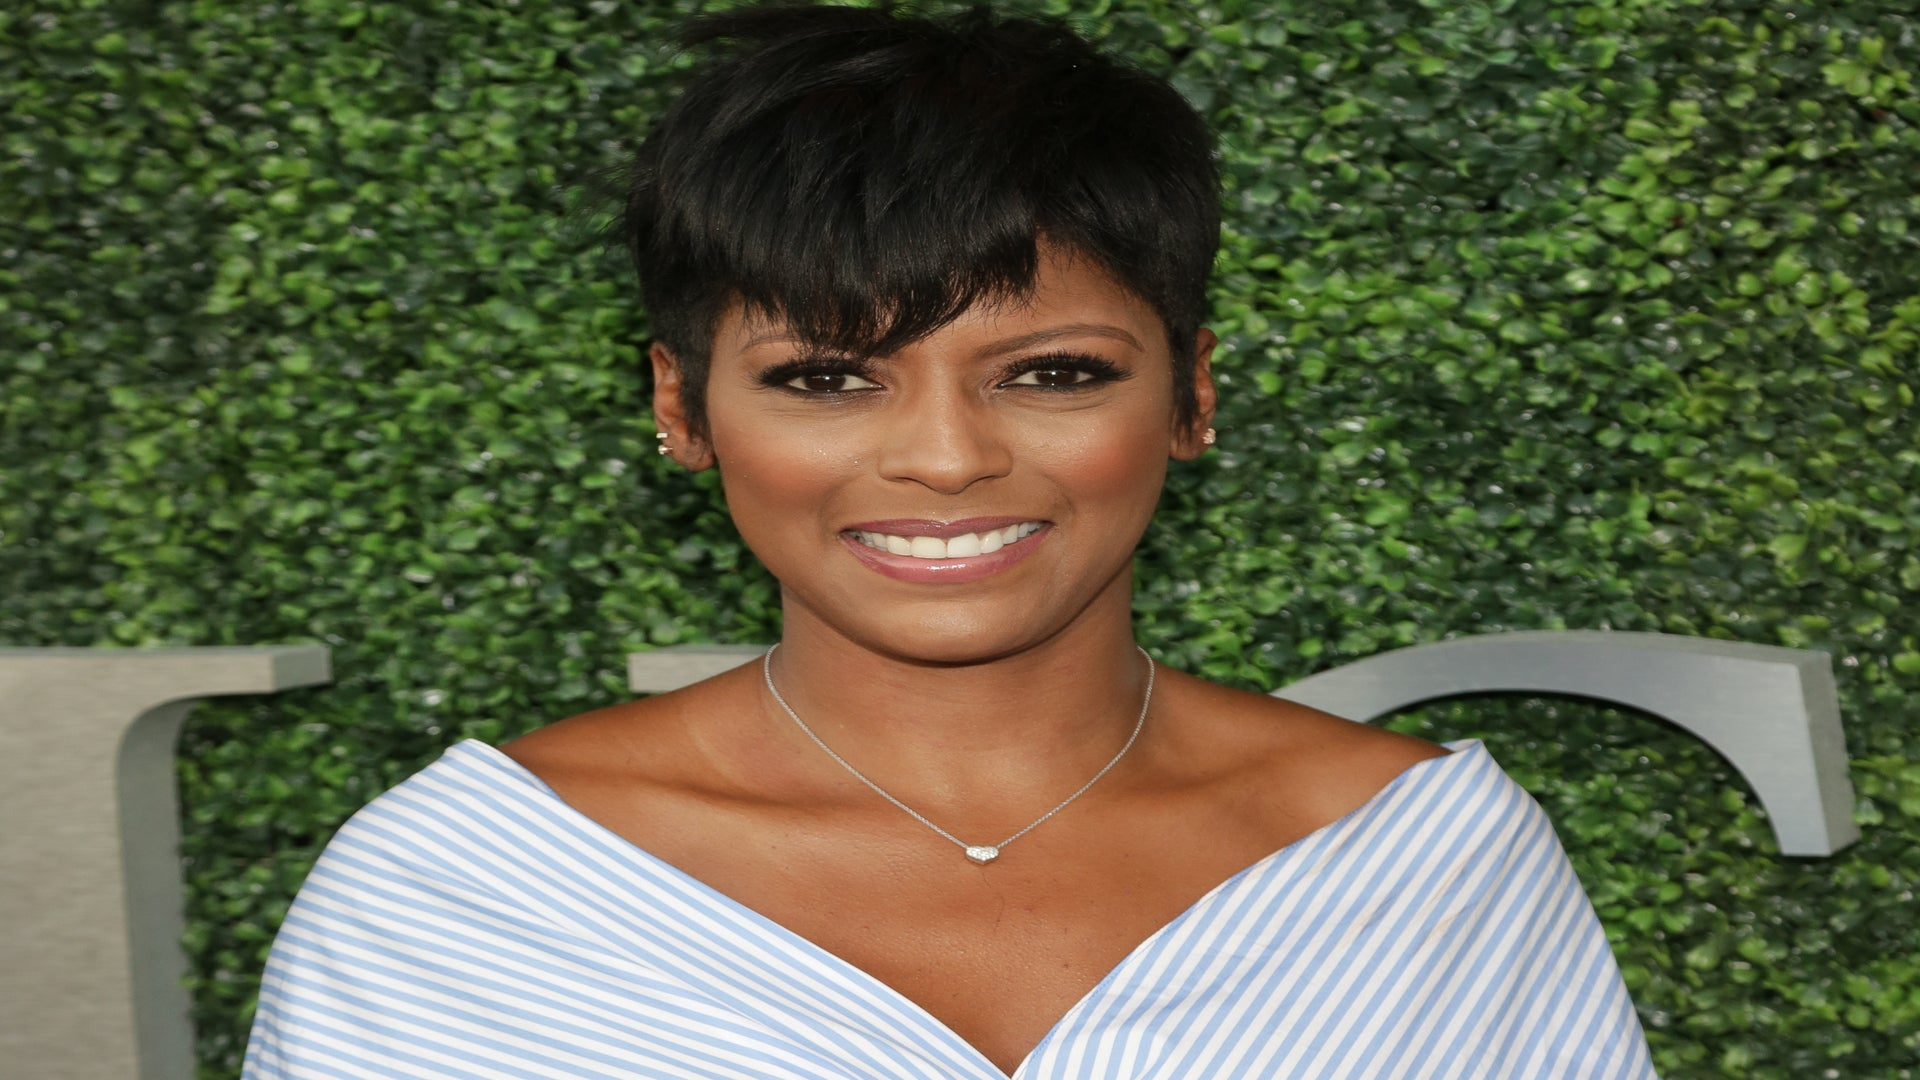 She's Back! Tamron Hall's Daytime Talk Show Gets September Premiere Date